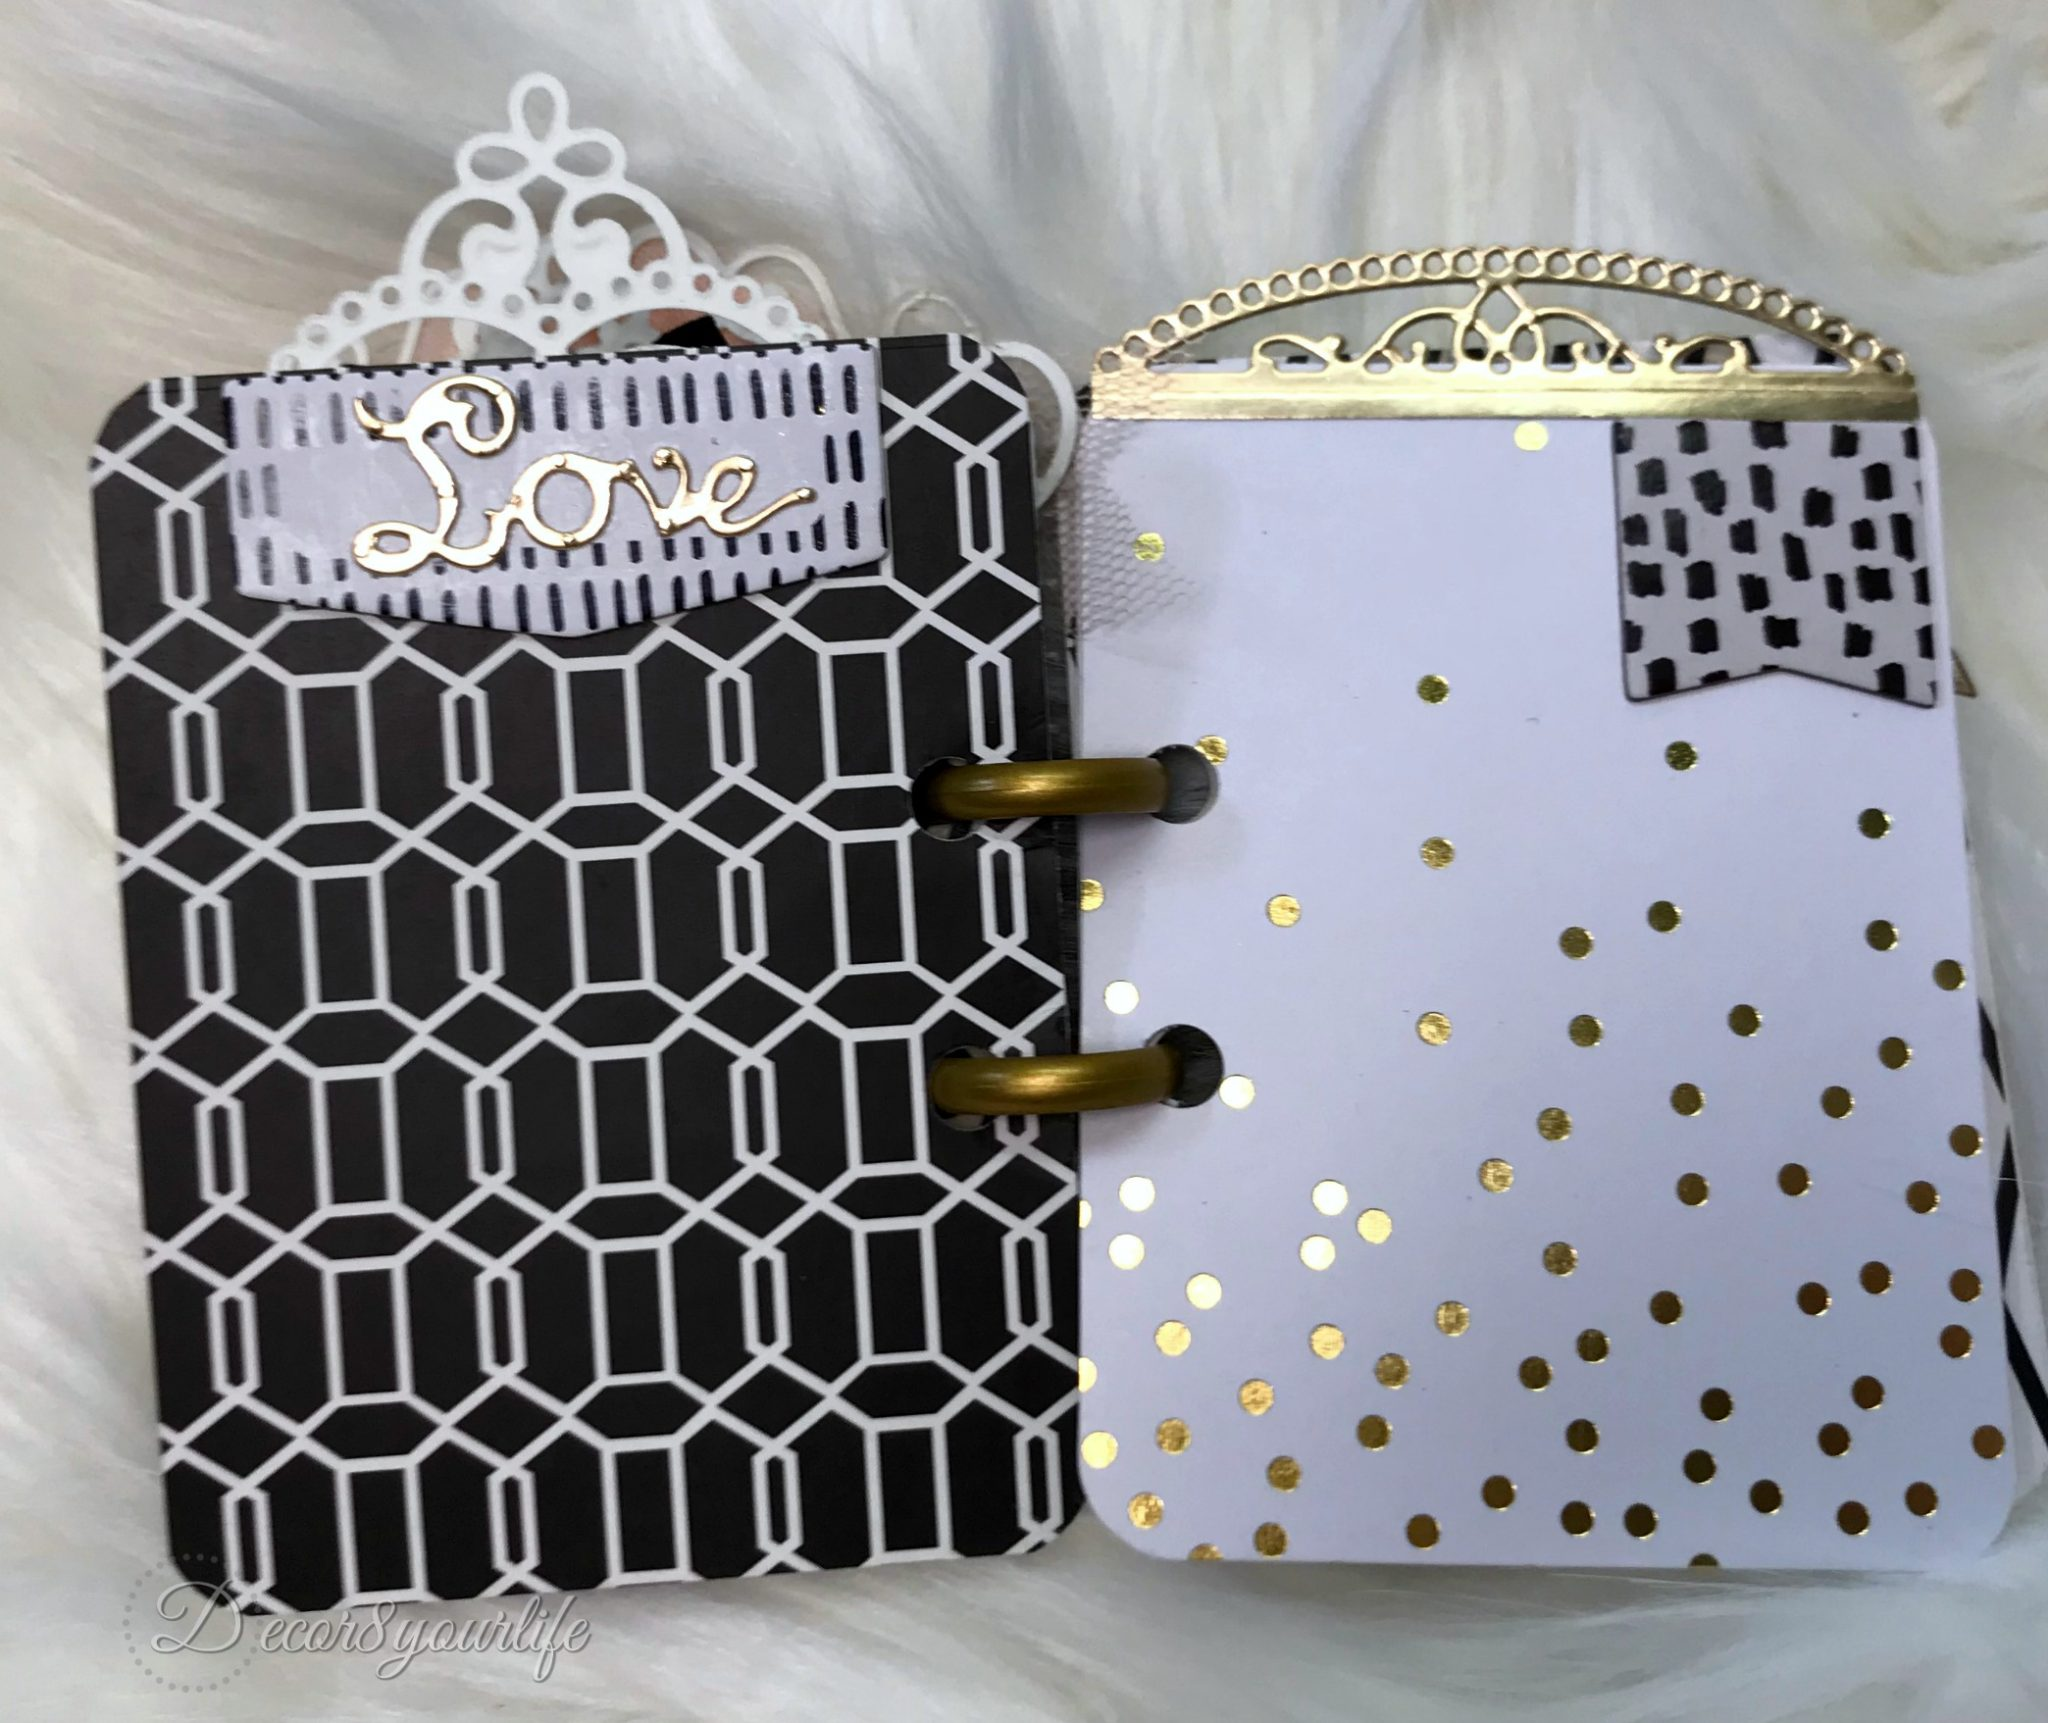 http://www.decor8yourlife.com/wp-content/uploads/2018/05/mini-album-tutorial-5.jpg